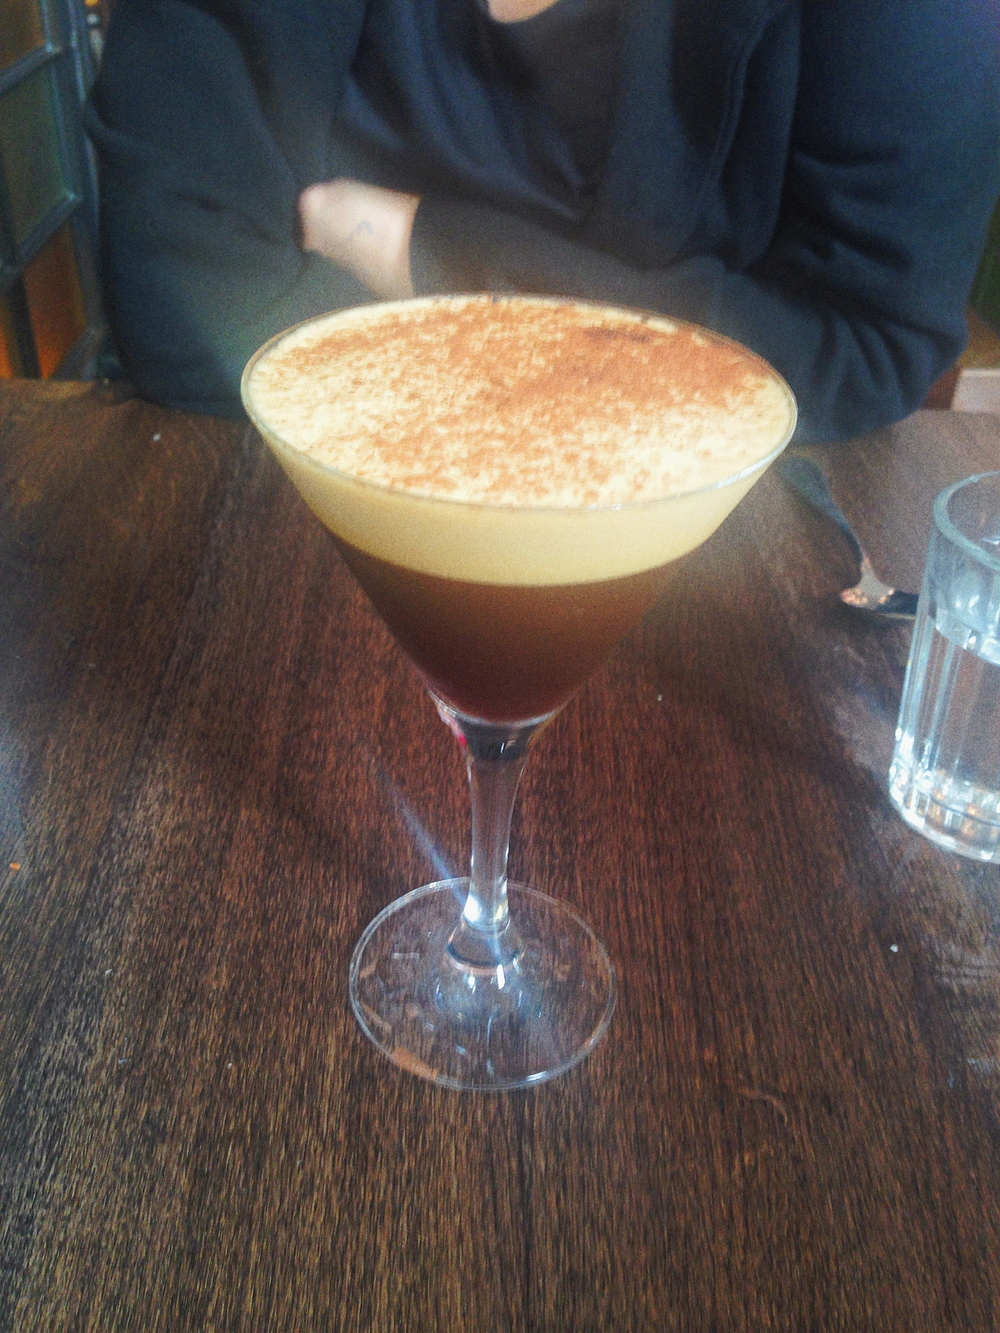 Holy Espresso: Tia Maria, hazelnut liqueur & amaretto with a double espresso shot, dusted with cocoa